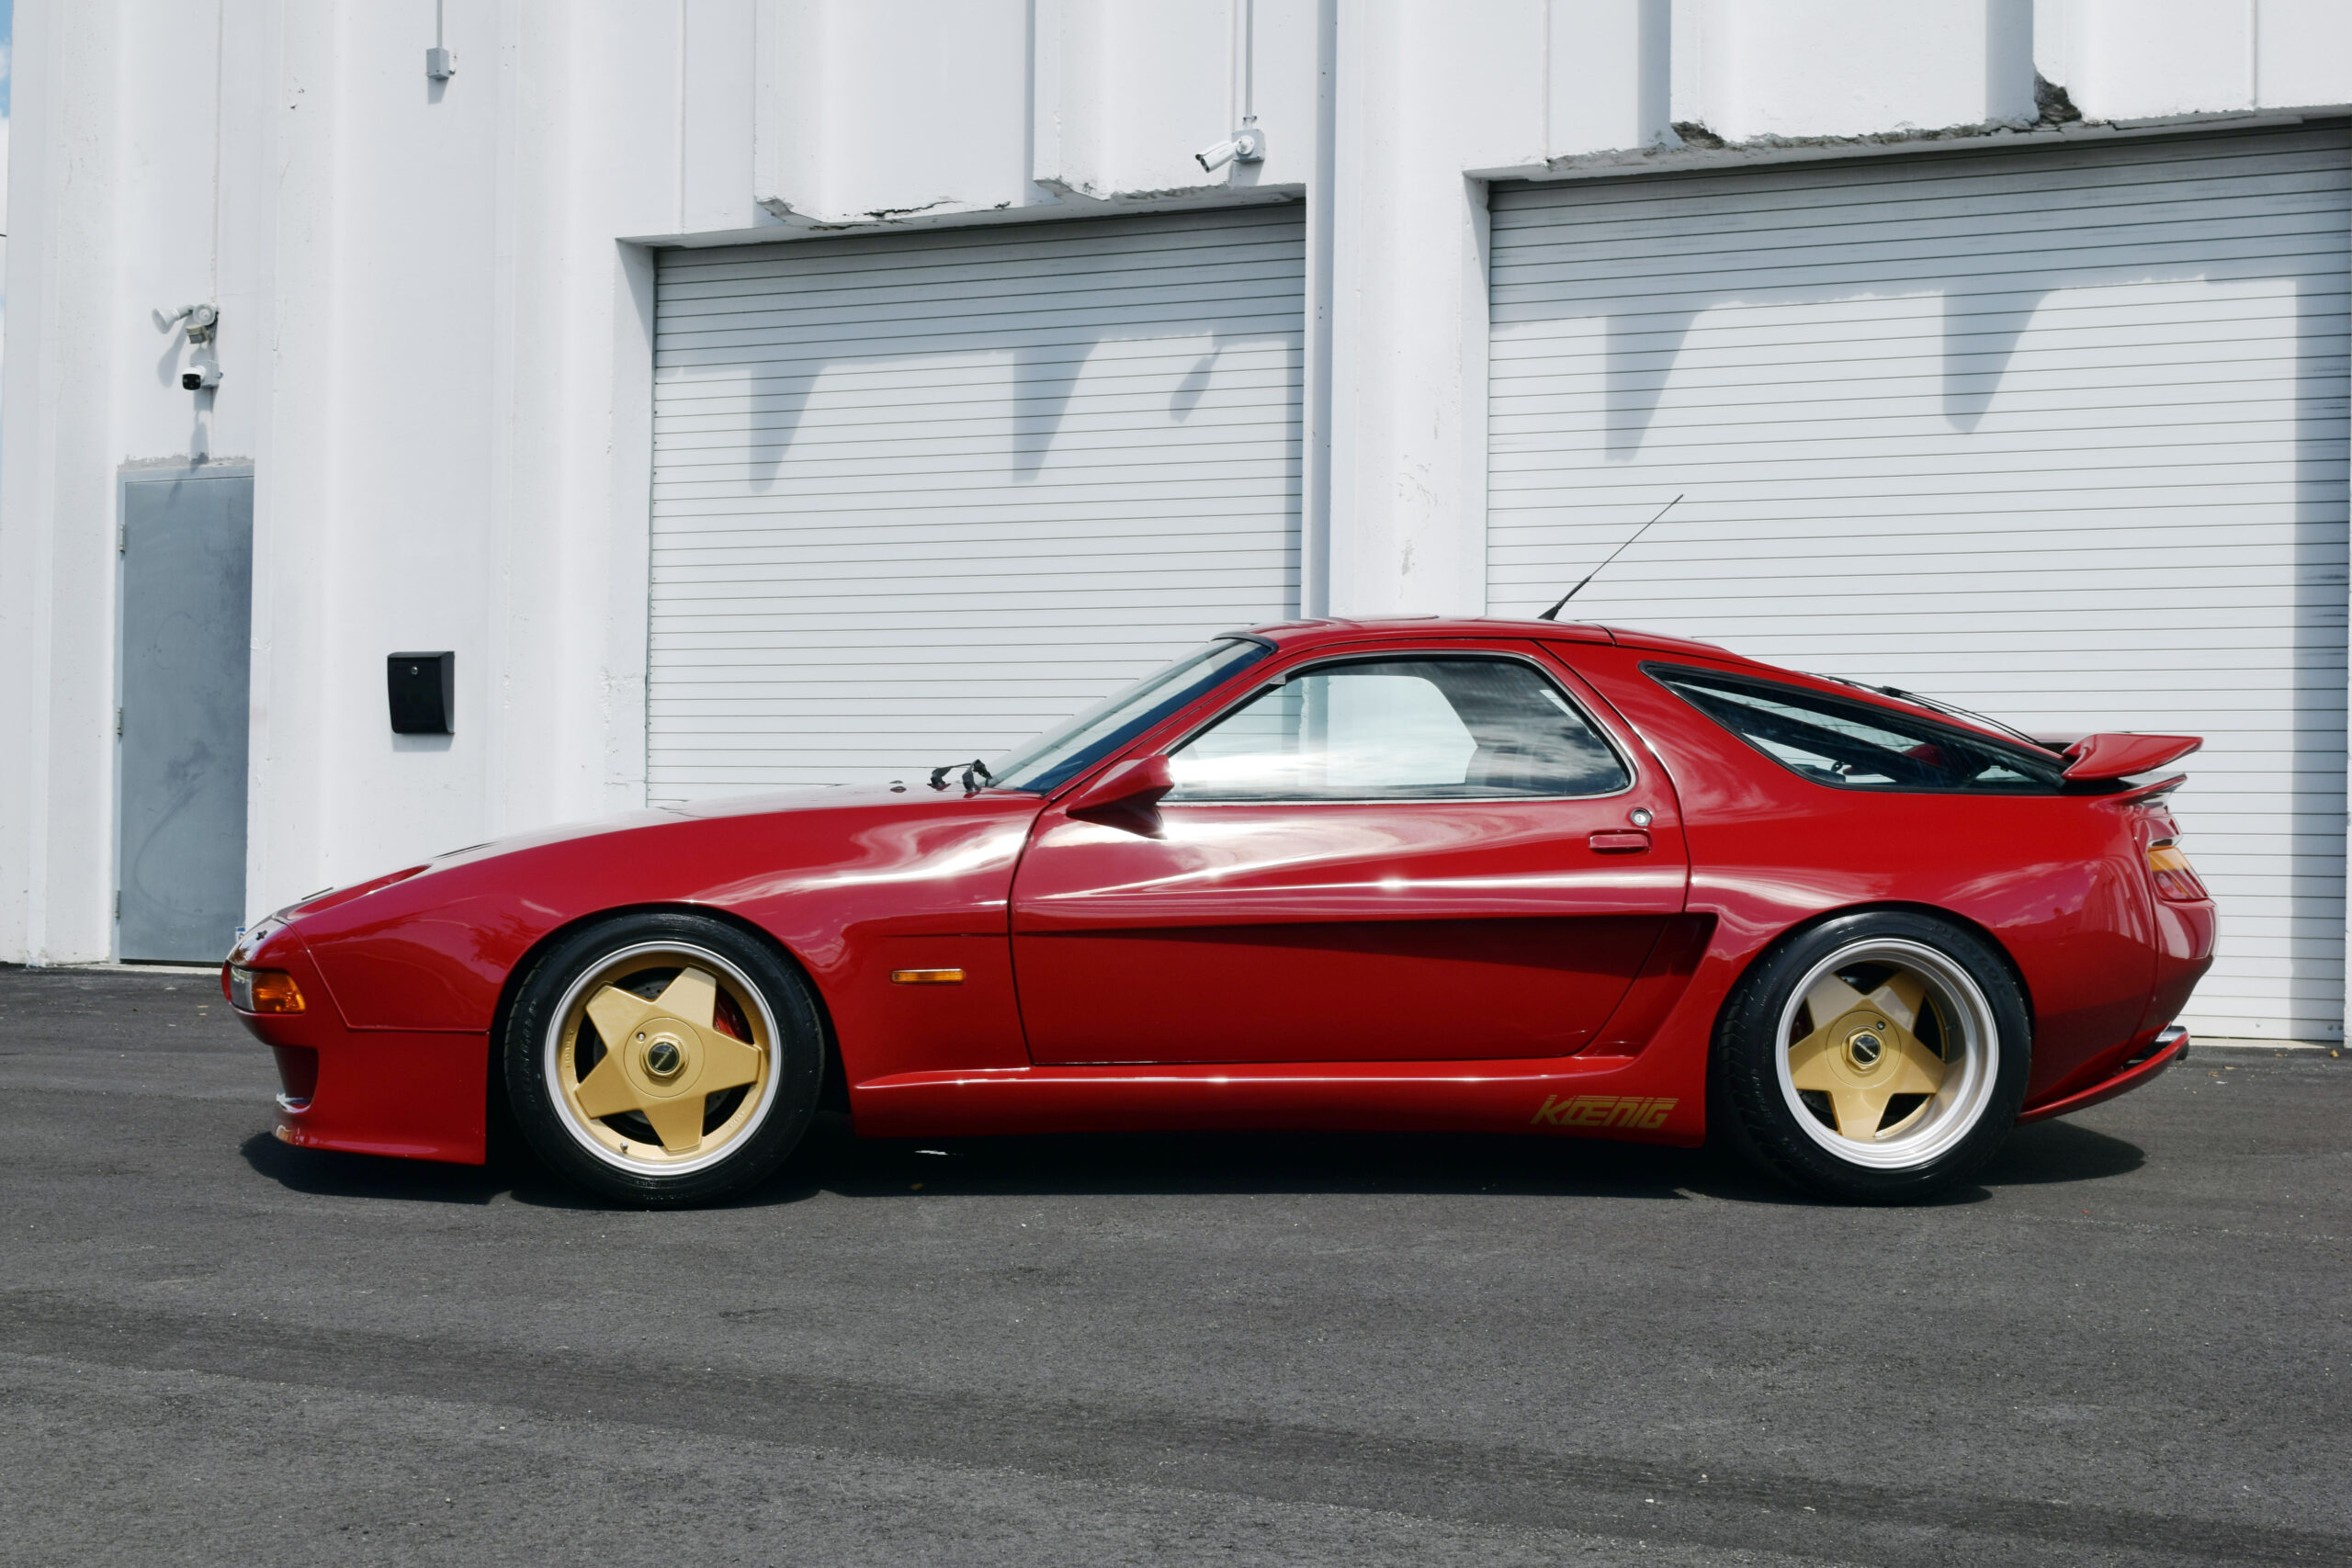 Authentic Koenig Specials Porsche 928, one of a handful ever made, Borbert A wheels, true time machine